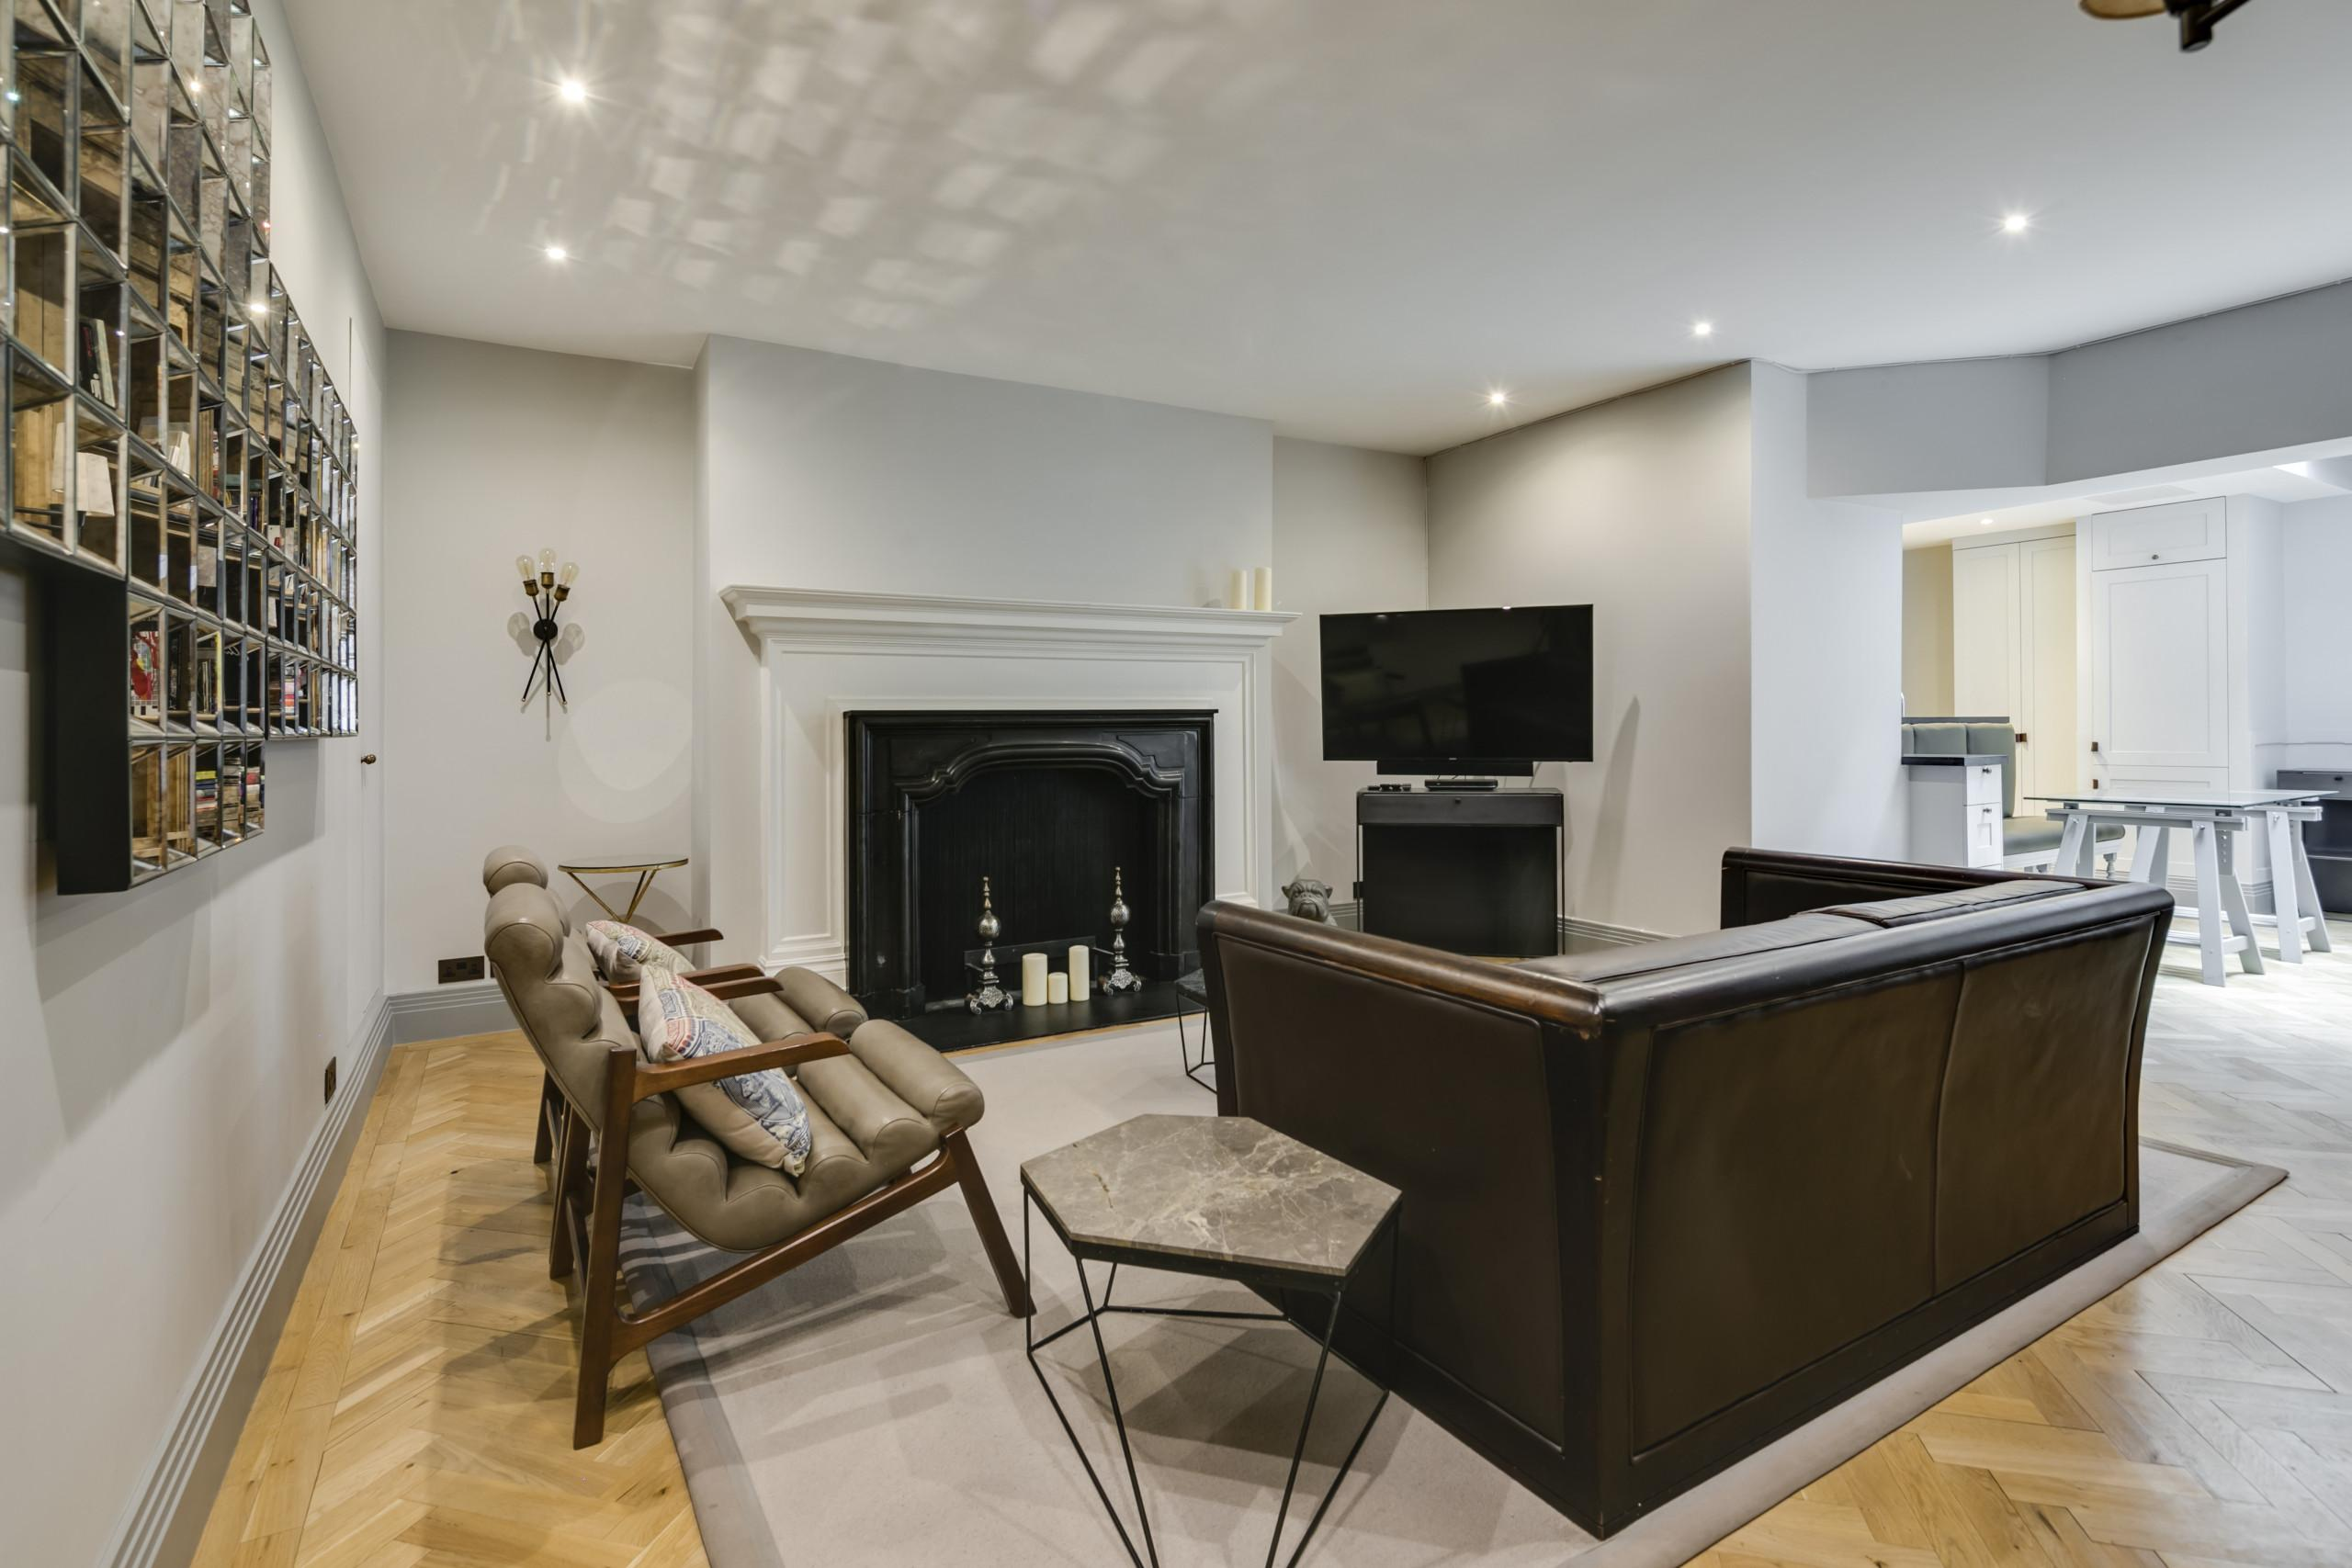 Property Image 1 - Stunning Mayfair Apartment with Private Courtyard